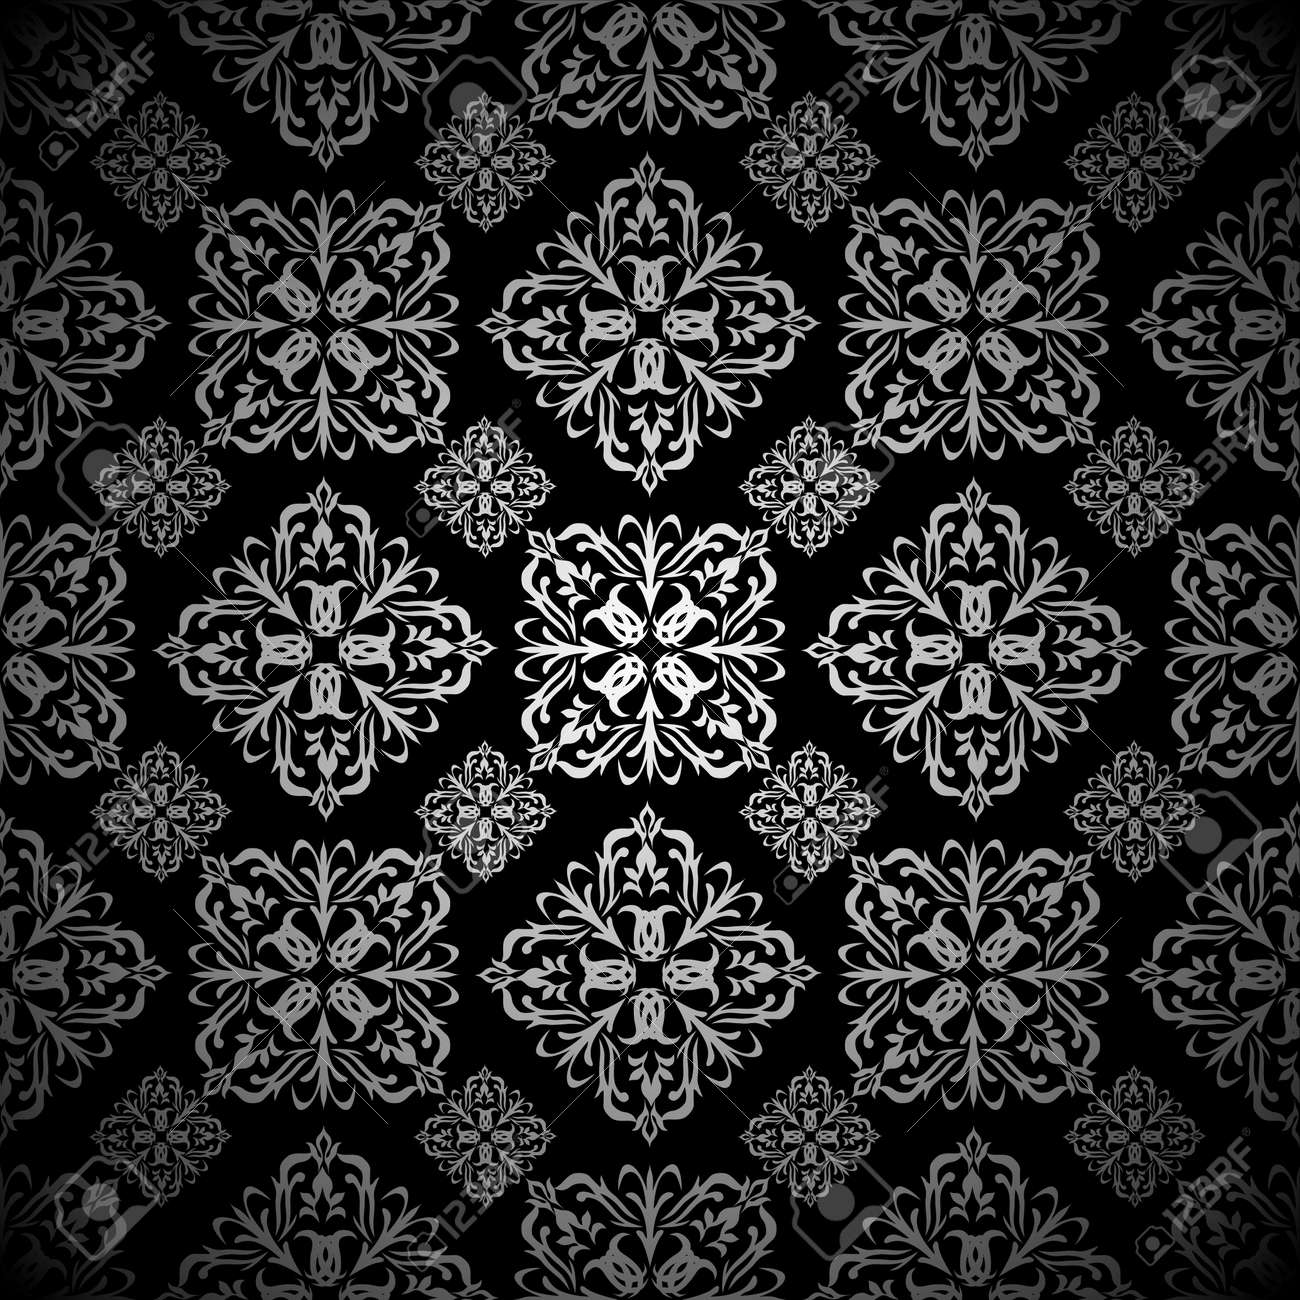 Silver and black seamless tile background wallpaper pattern Stock Photo - 7223443